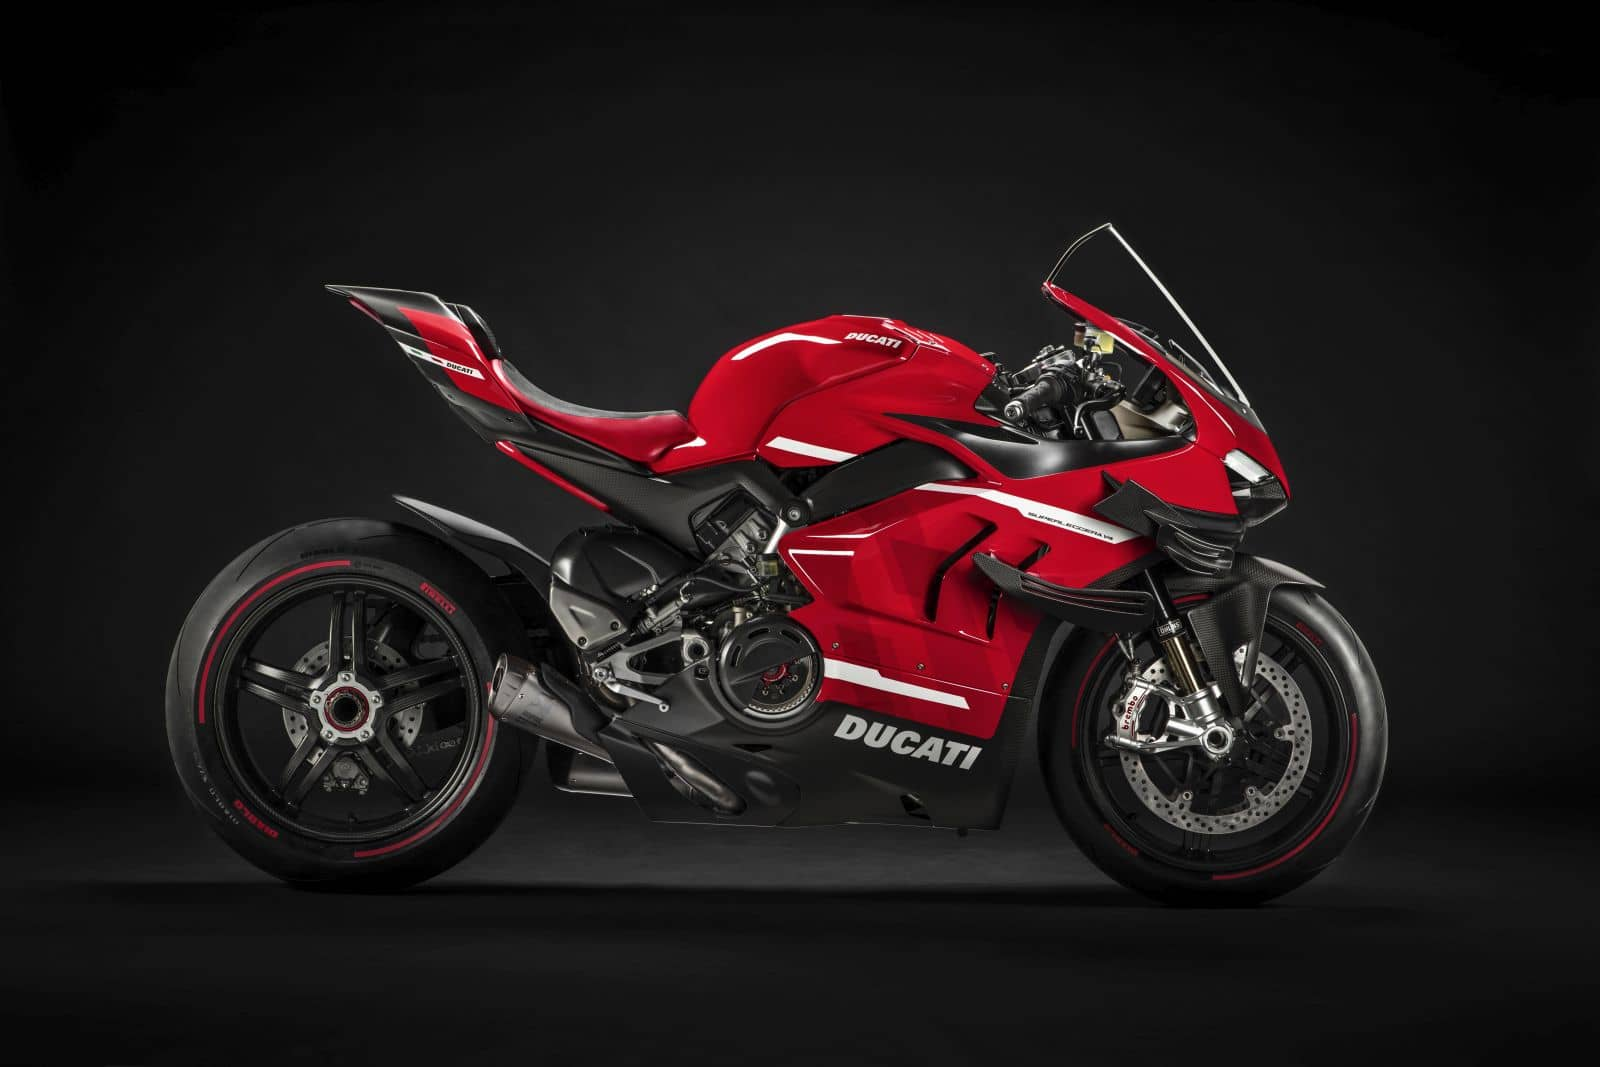 DucatiSuperlegera004